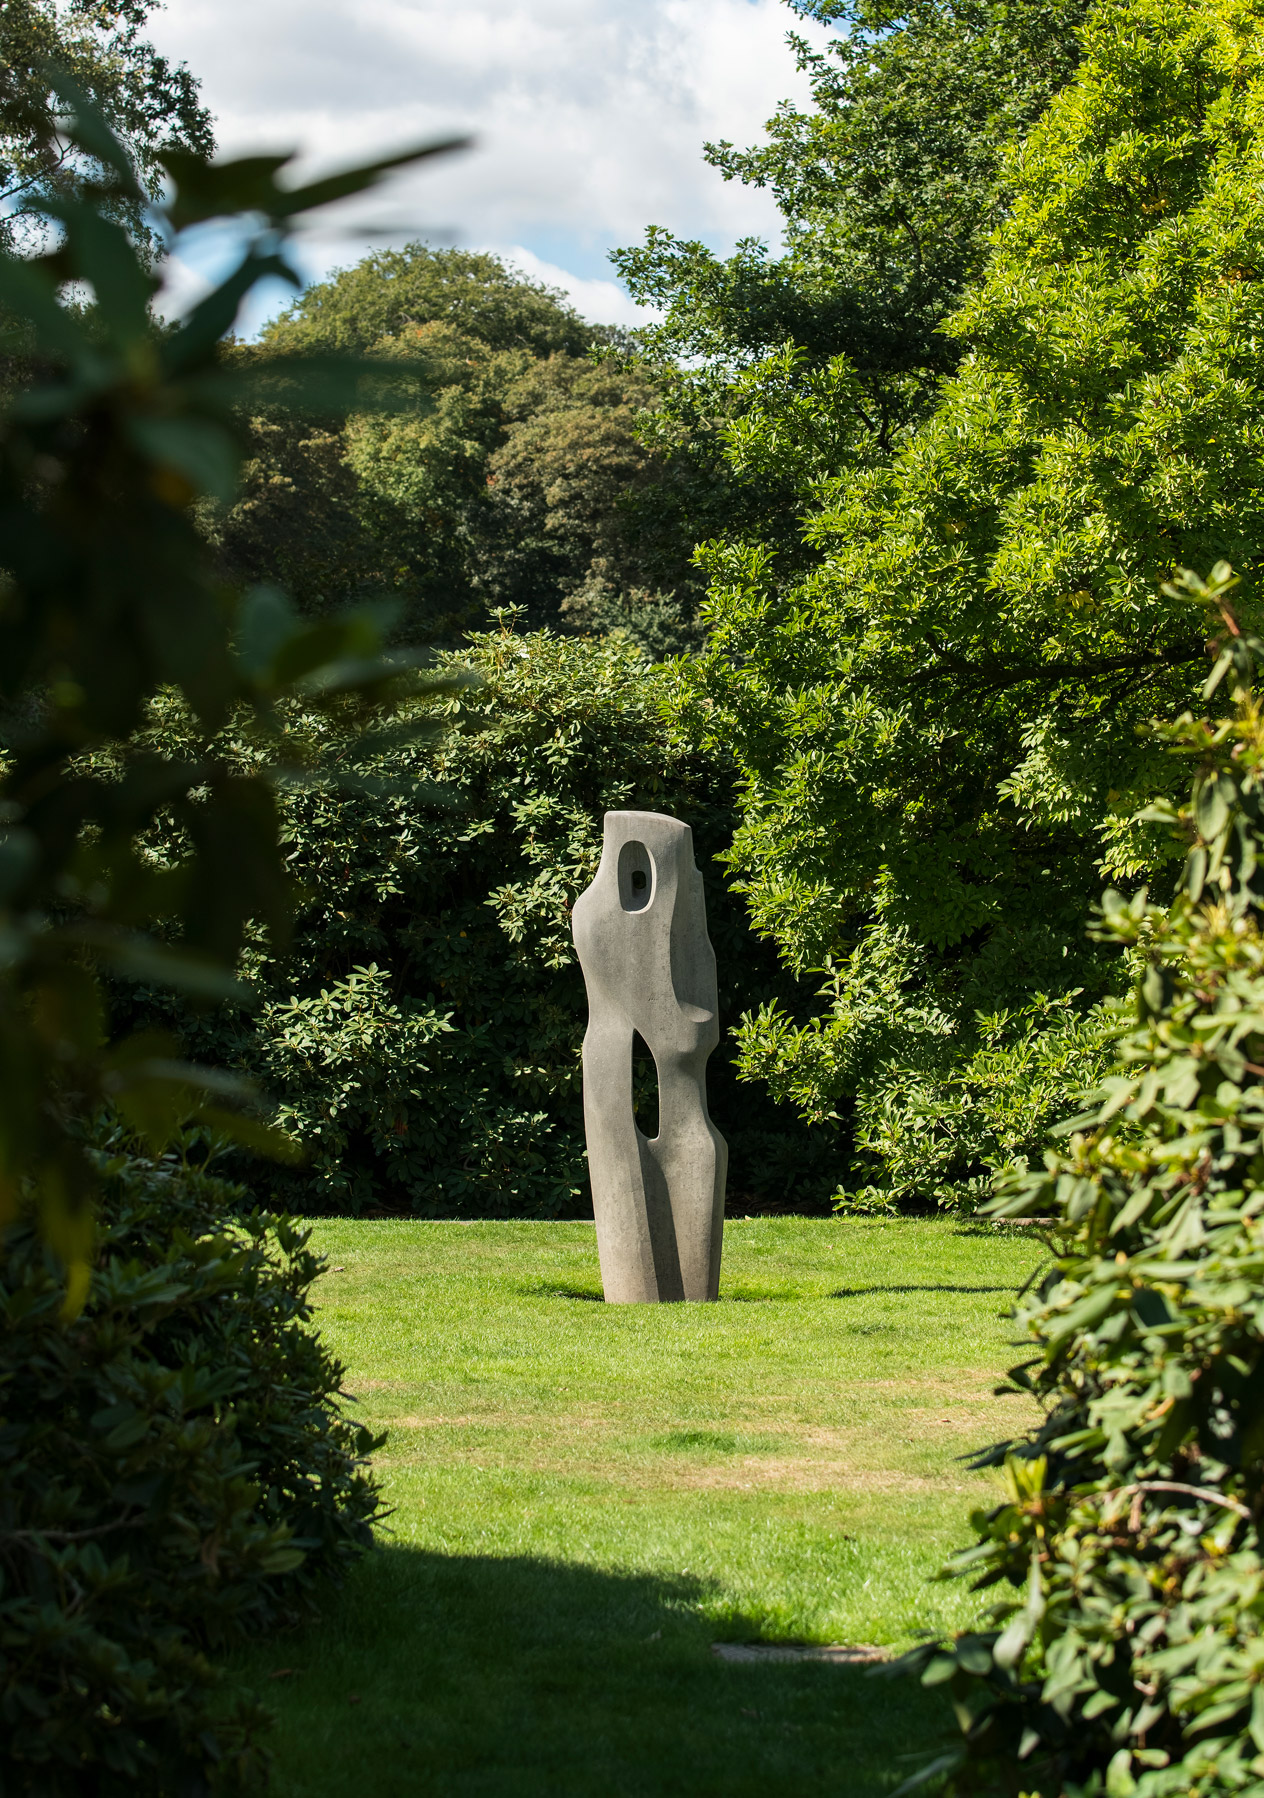 A sculpture appears in the opening amoungst the greenery of hampstead